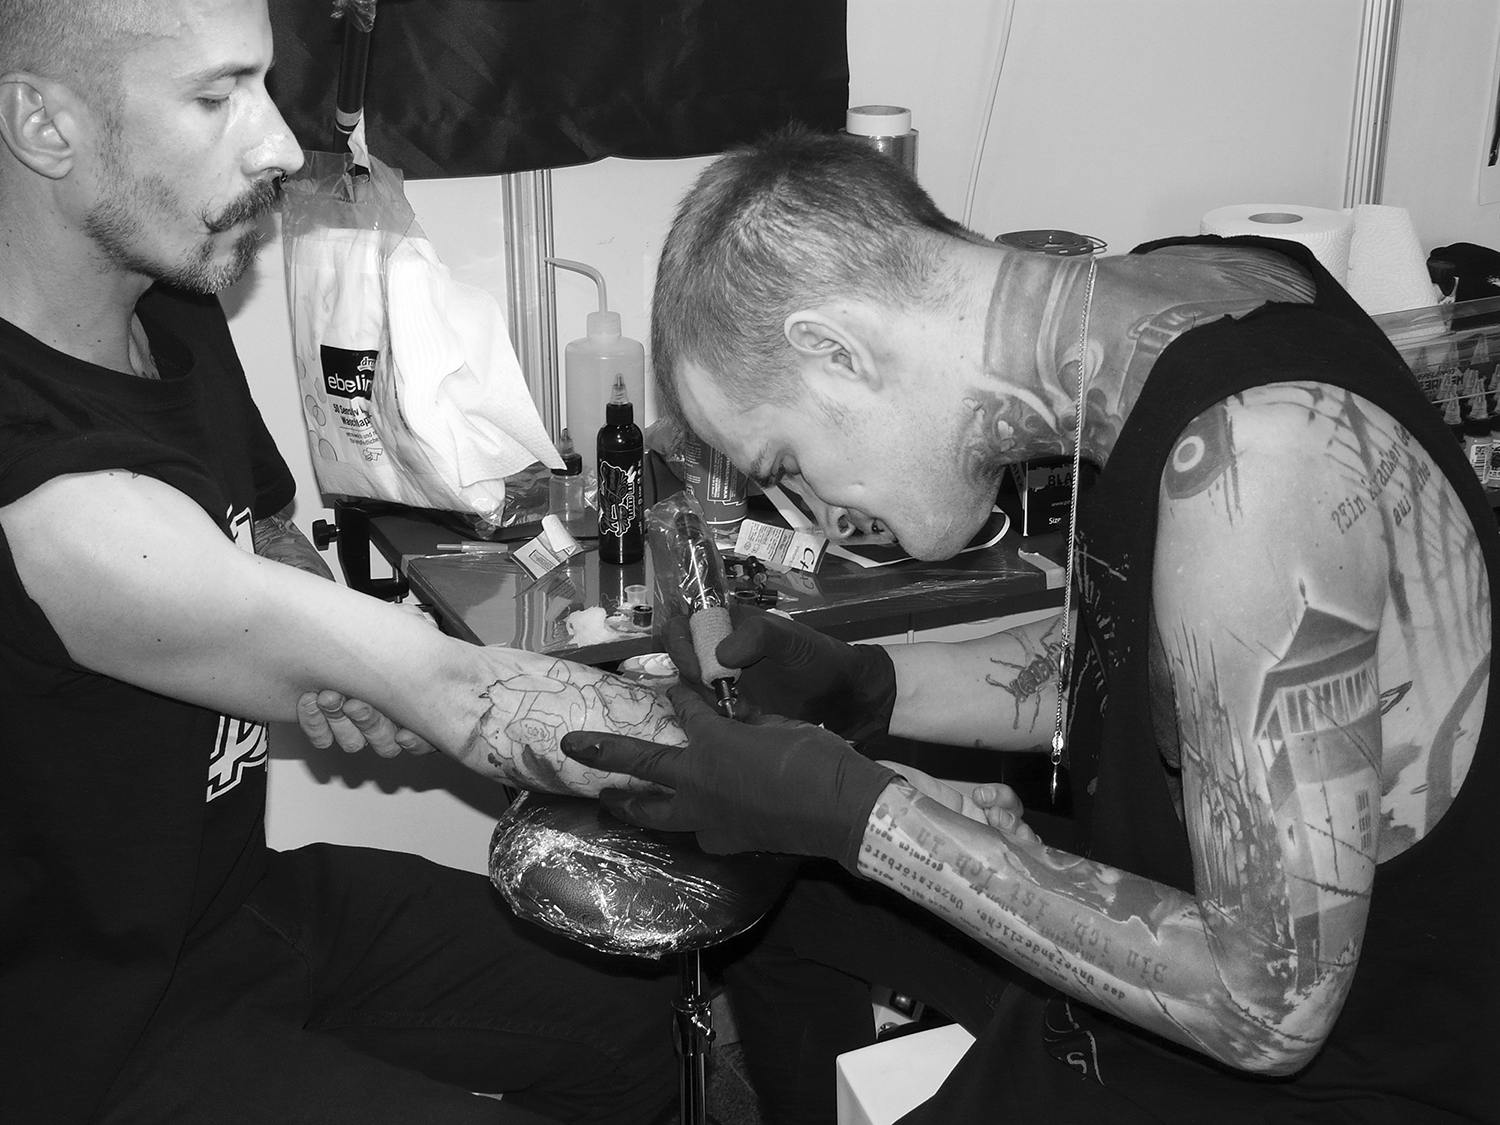 Neon Judas tattooing client's arm